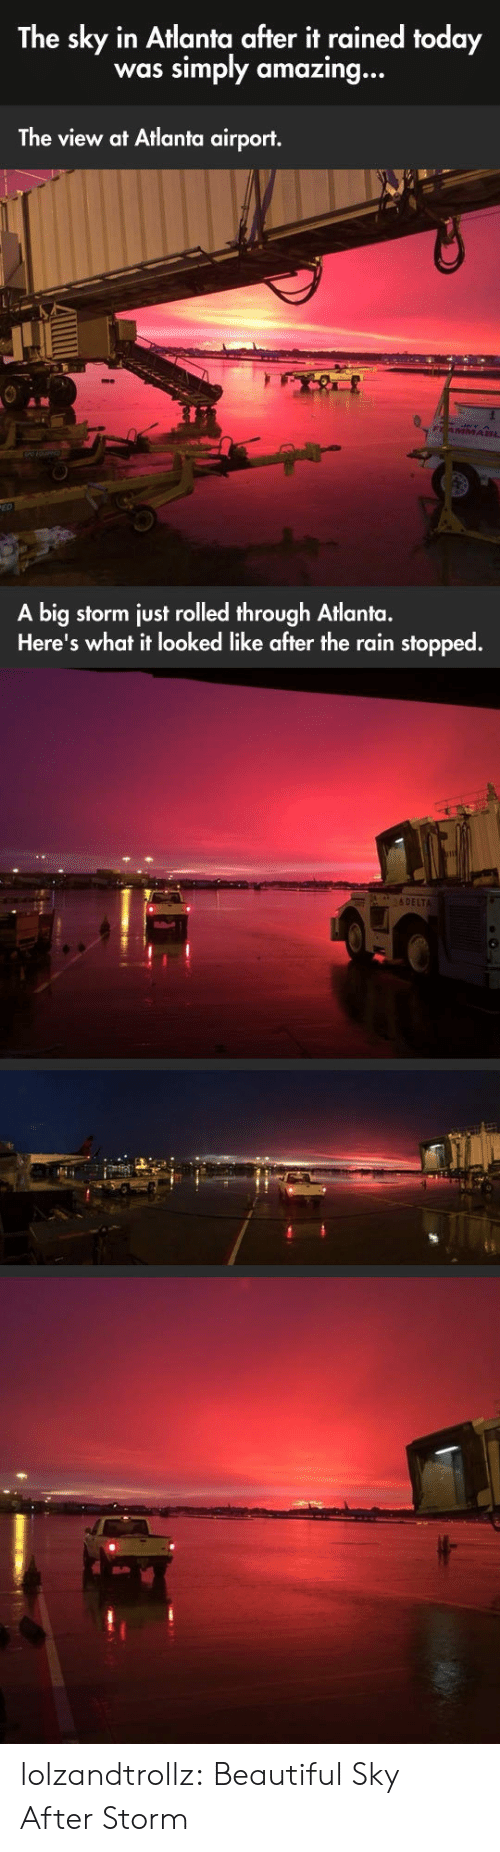 Delta: The sky in Atlanta after it rained today  simply amazing...  was  The view at Atlanta airport.  FAMMA8L  A big storm just rolled through Atlanta.  Here's what it looked like after the rain stopped.  &DELTA lolzandtrollz:  Beautiful Sky After Storm